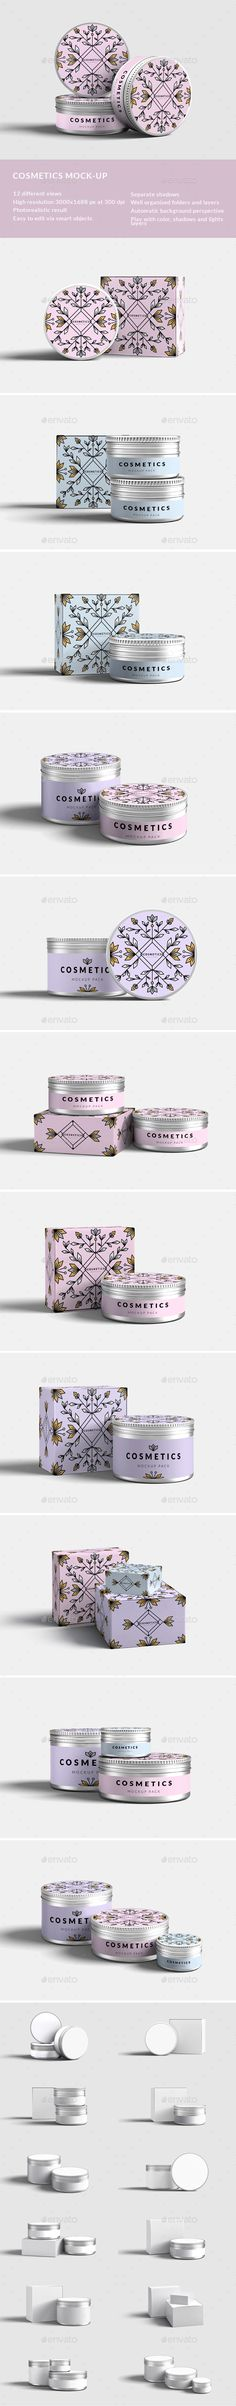 Cosmetics mock-up Design Template  - Product Mock-Ups Graphics Design Template PSD. Download here: https://graphicriver.net/item/cosmetics-mockup/18088917?ref=yinkira